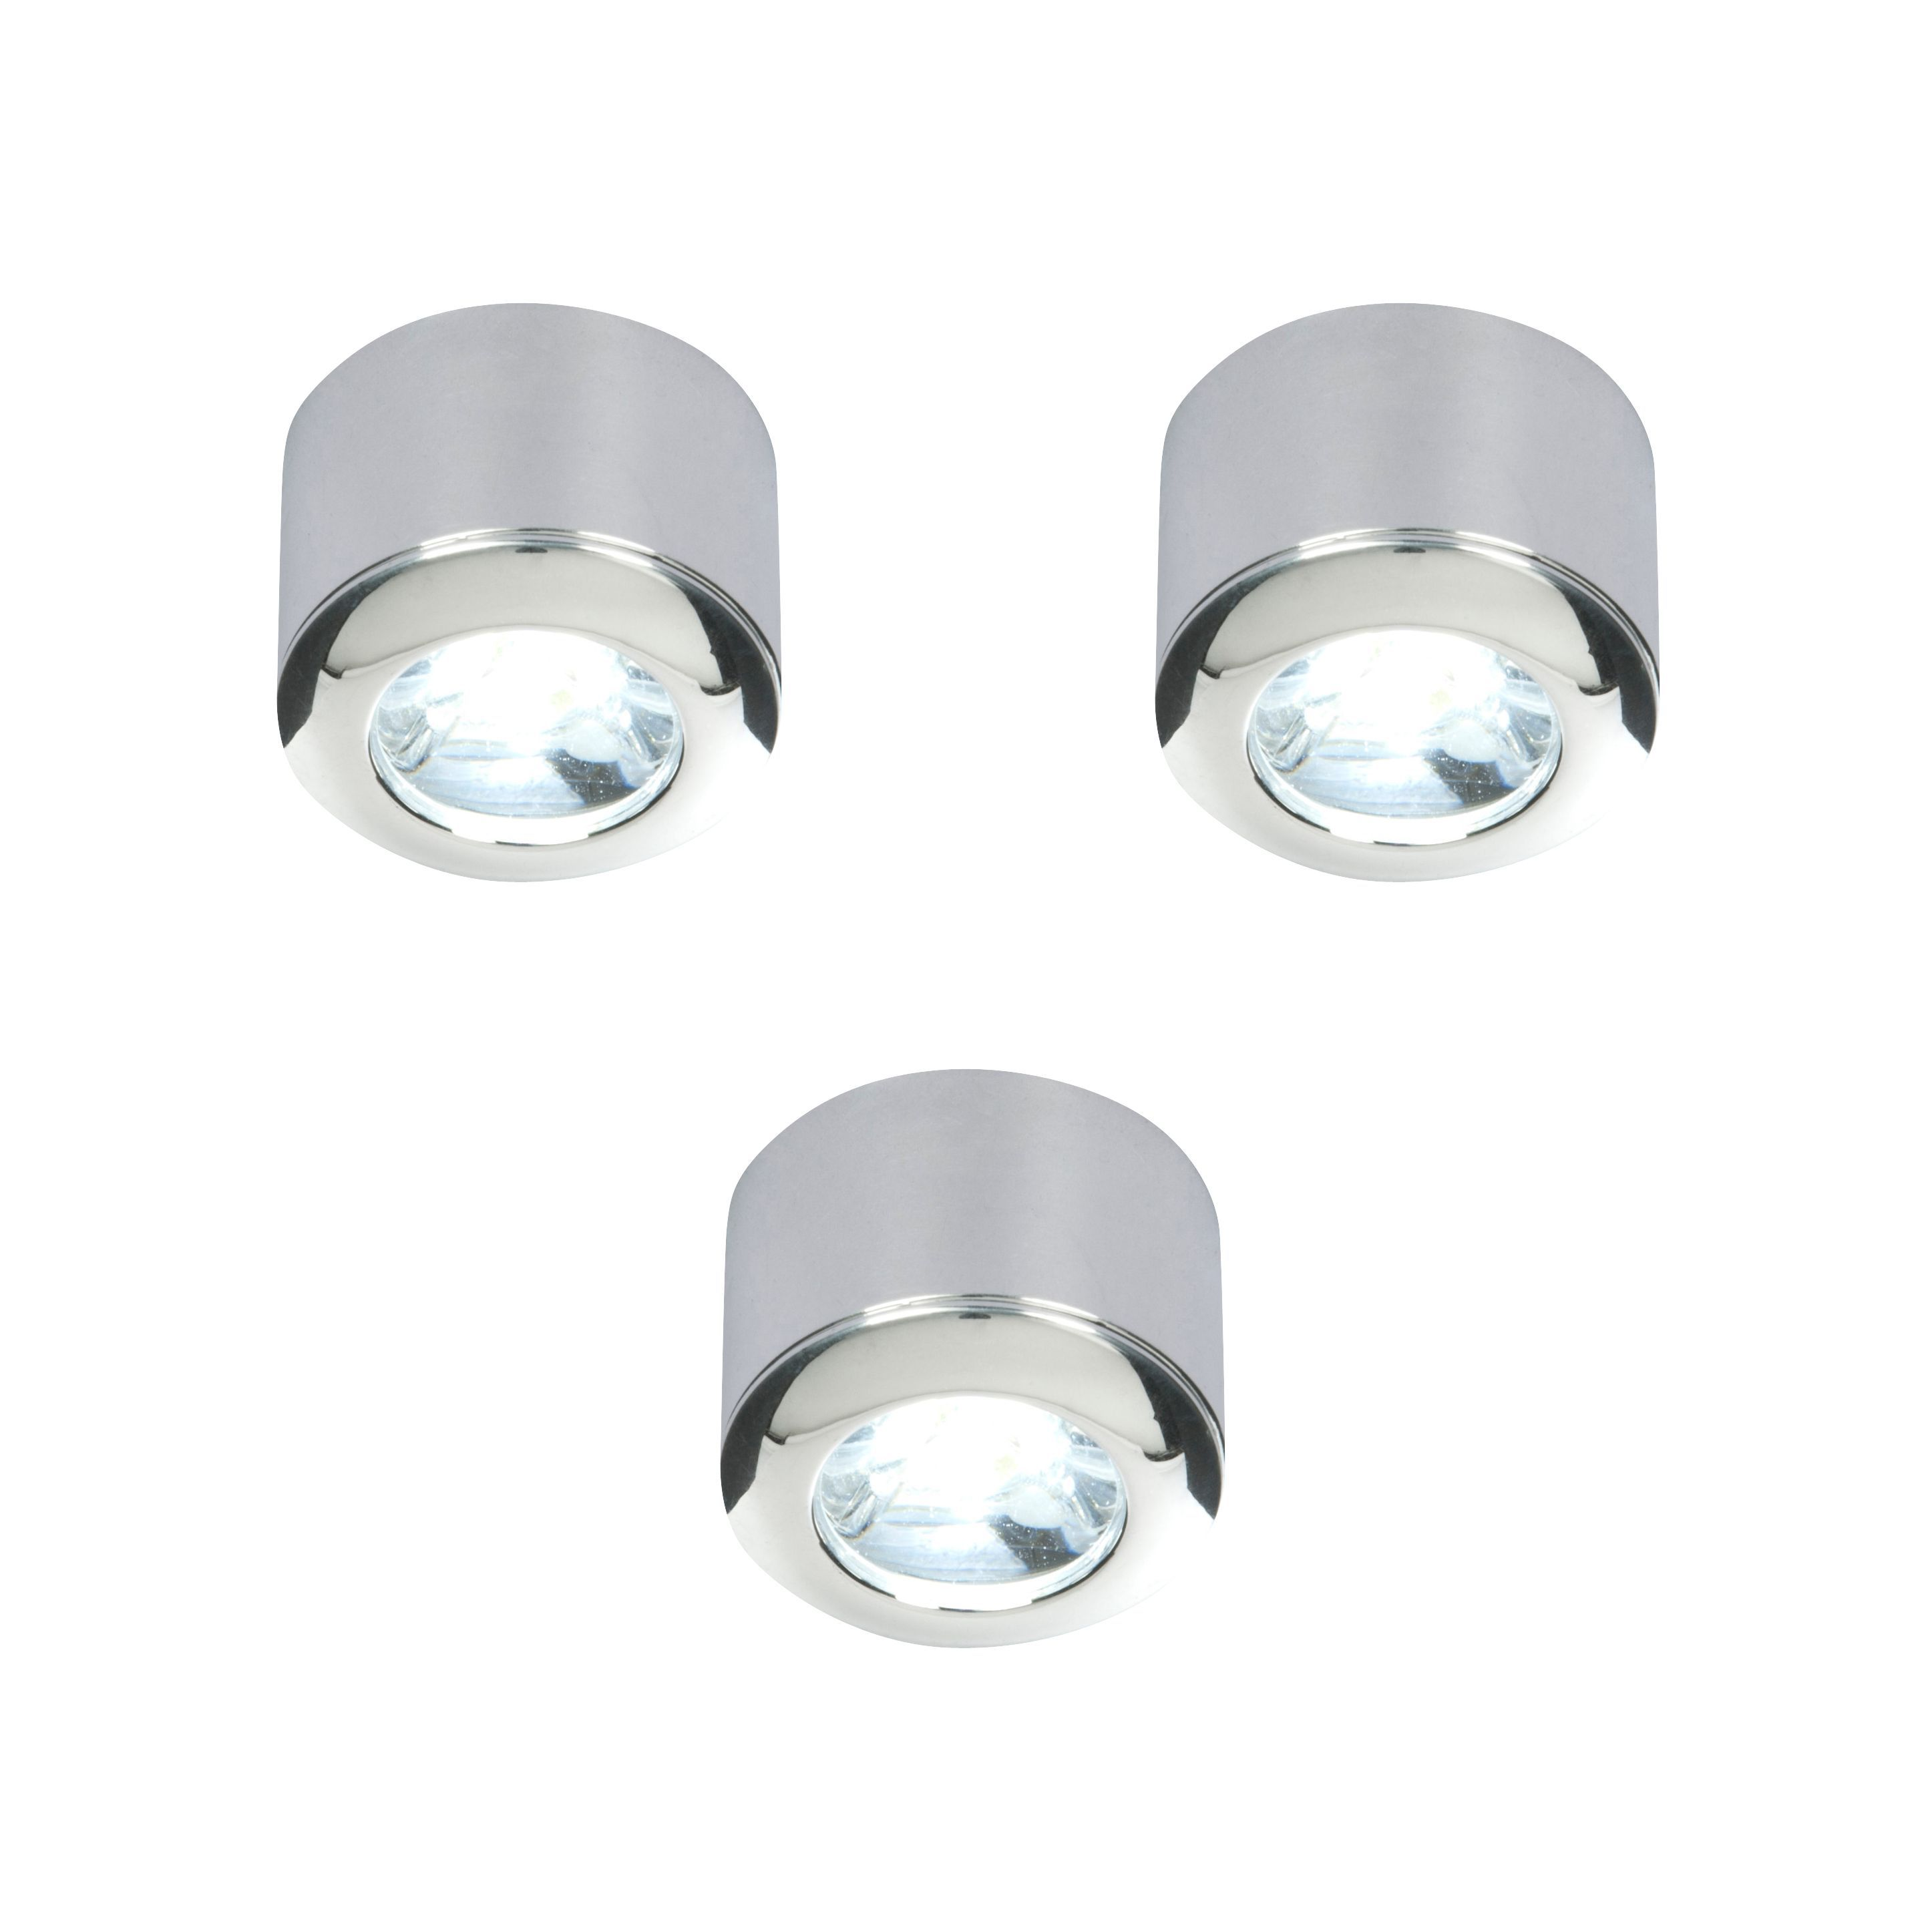 Masterlite Mains Powered Led Cabinet Light, Pack Of 3